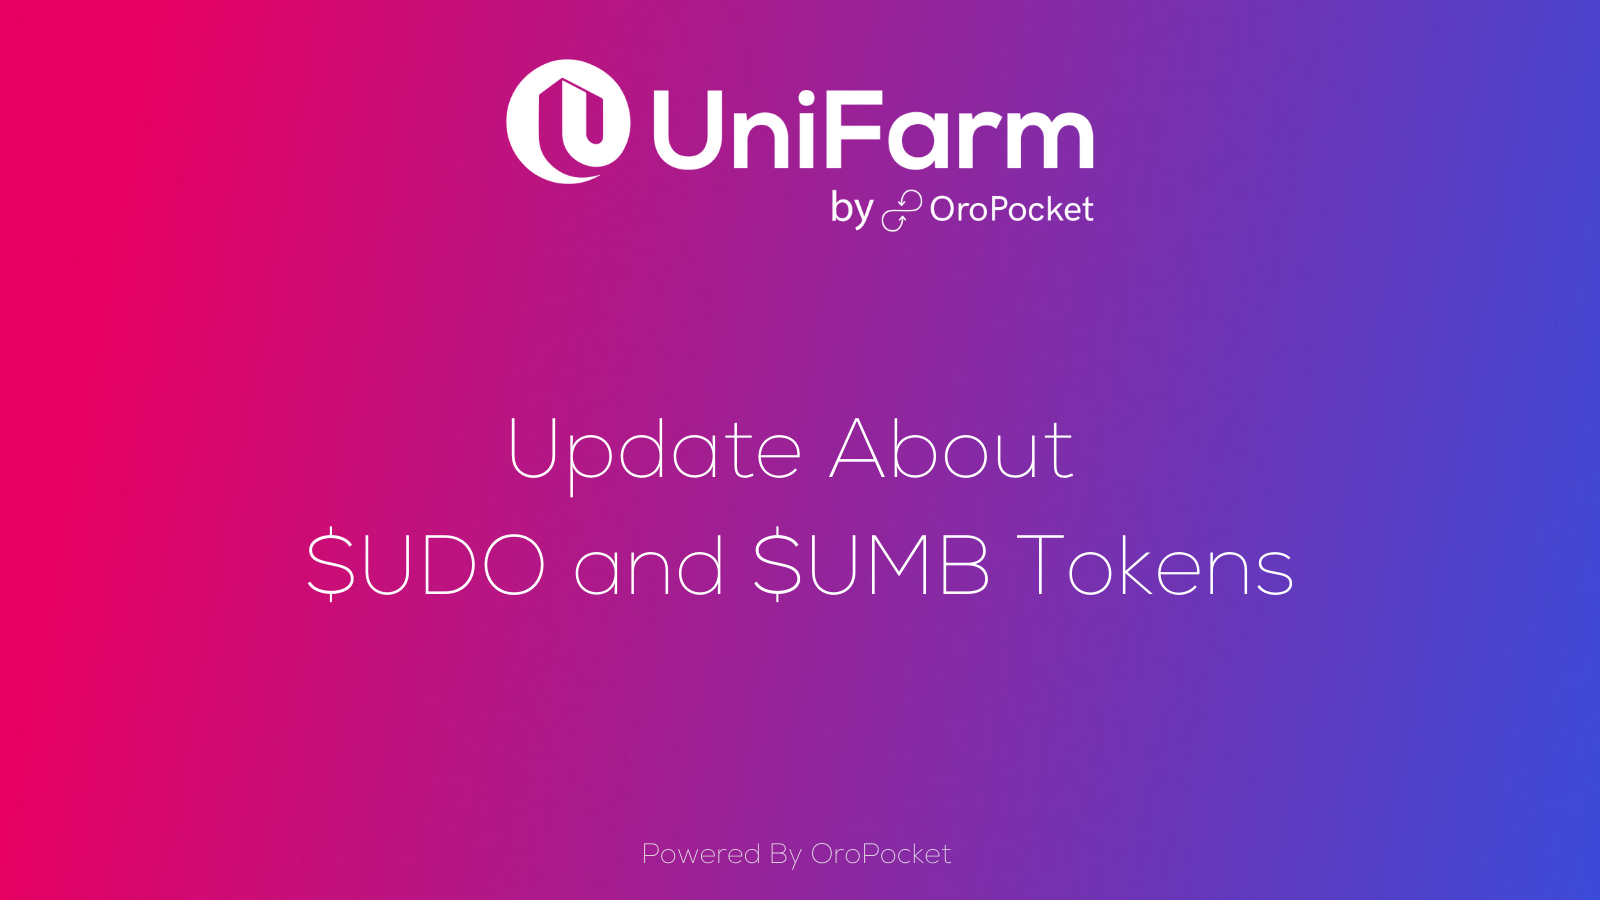 Update About $UDO and $UMB Tokens